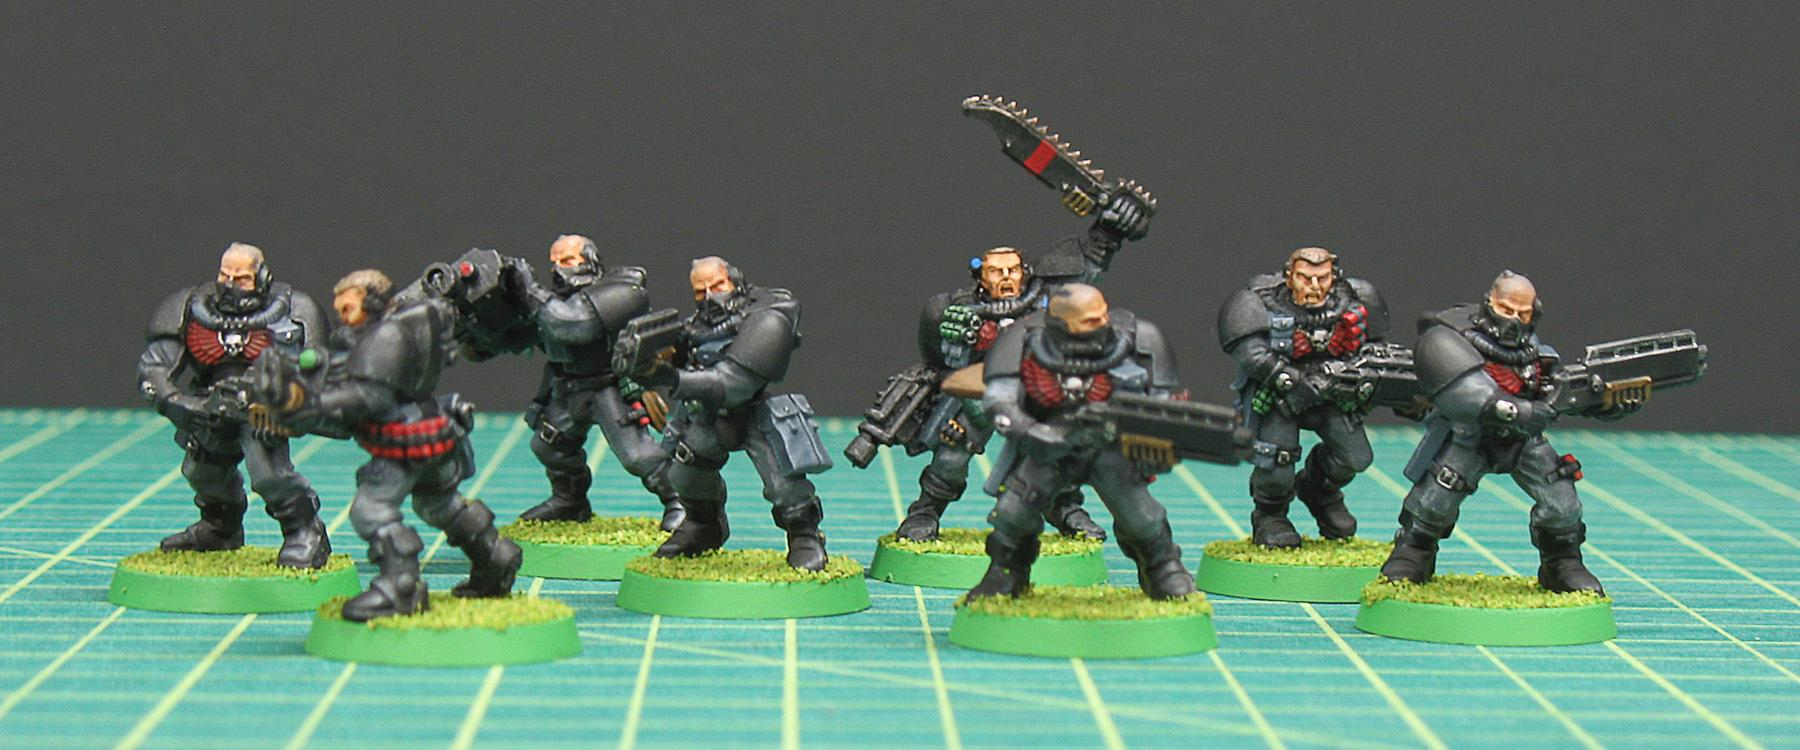 Blood Angels, Kit-bashed, Rogue Trader, Scouts